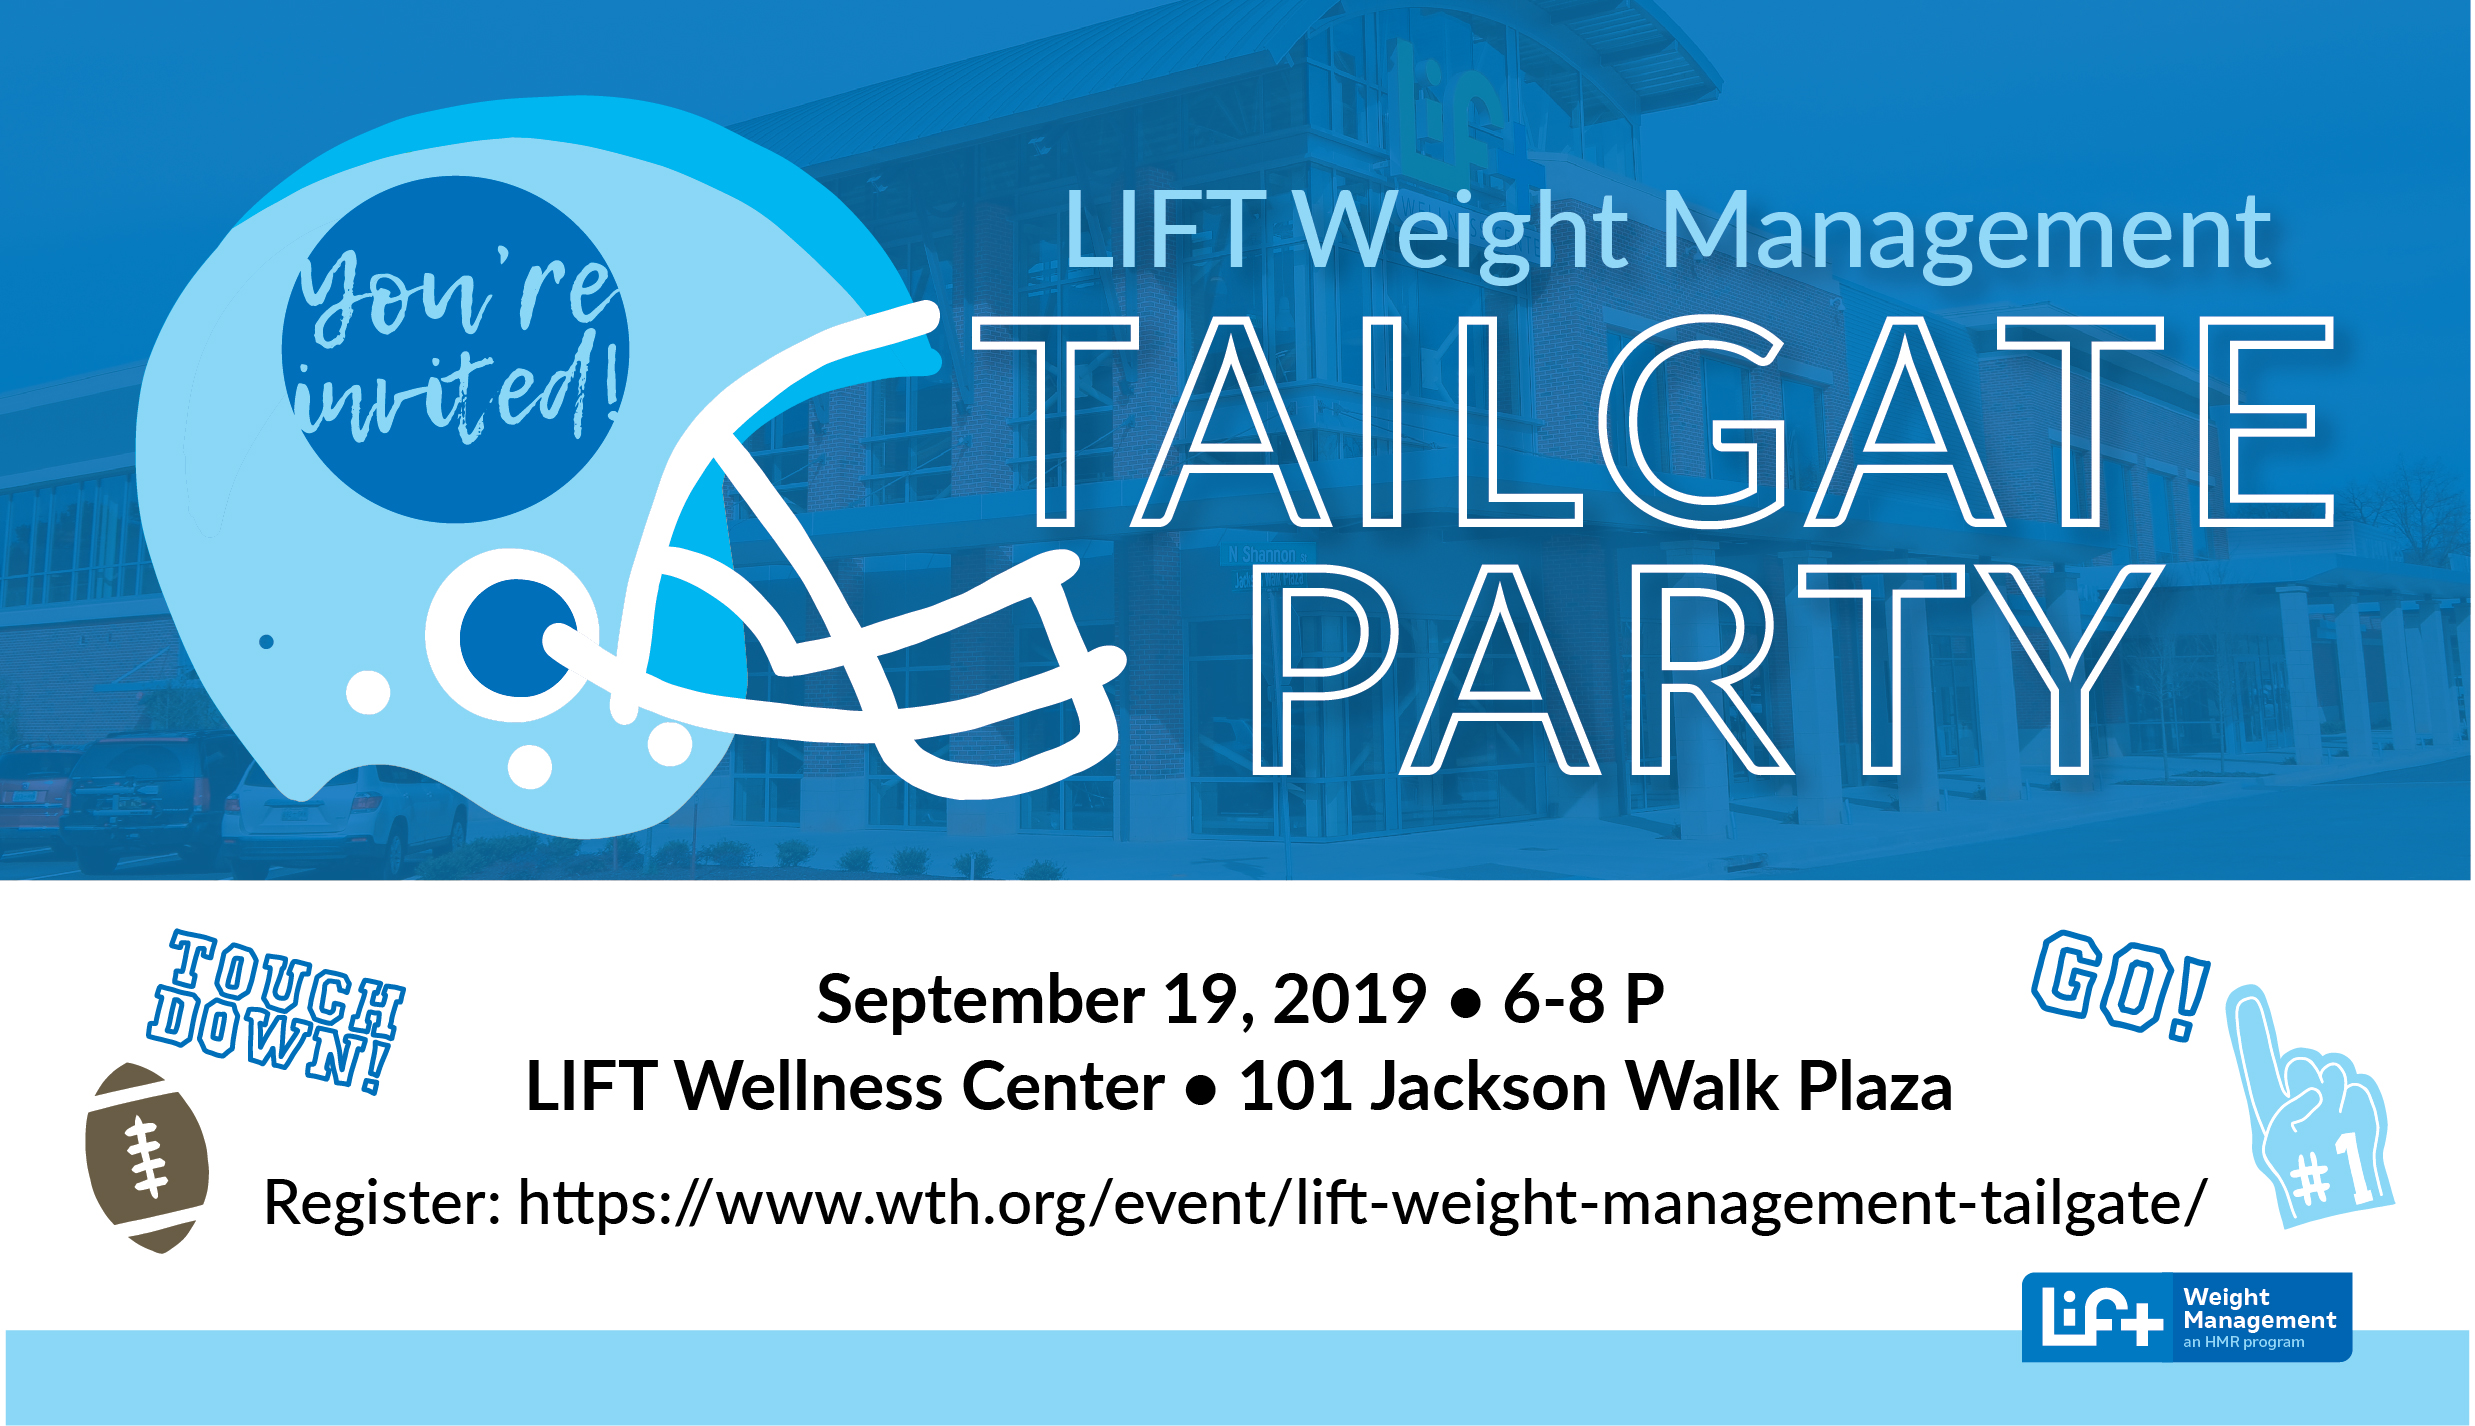 LIFT Weight Management Tailgate Party